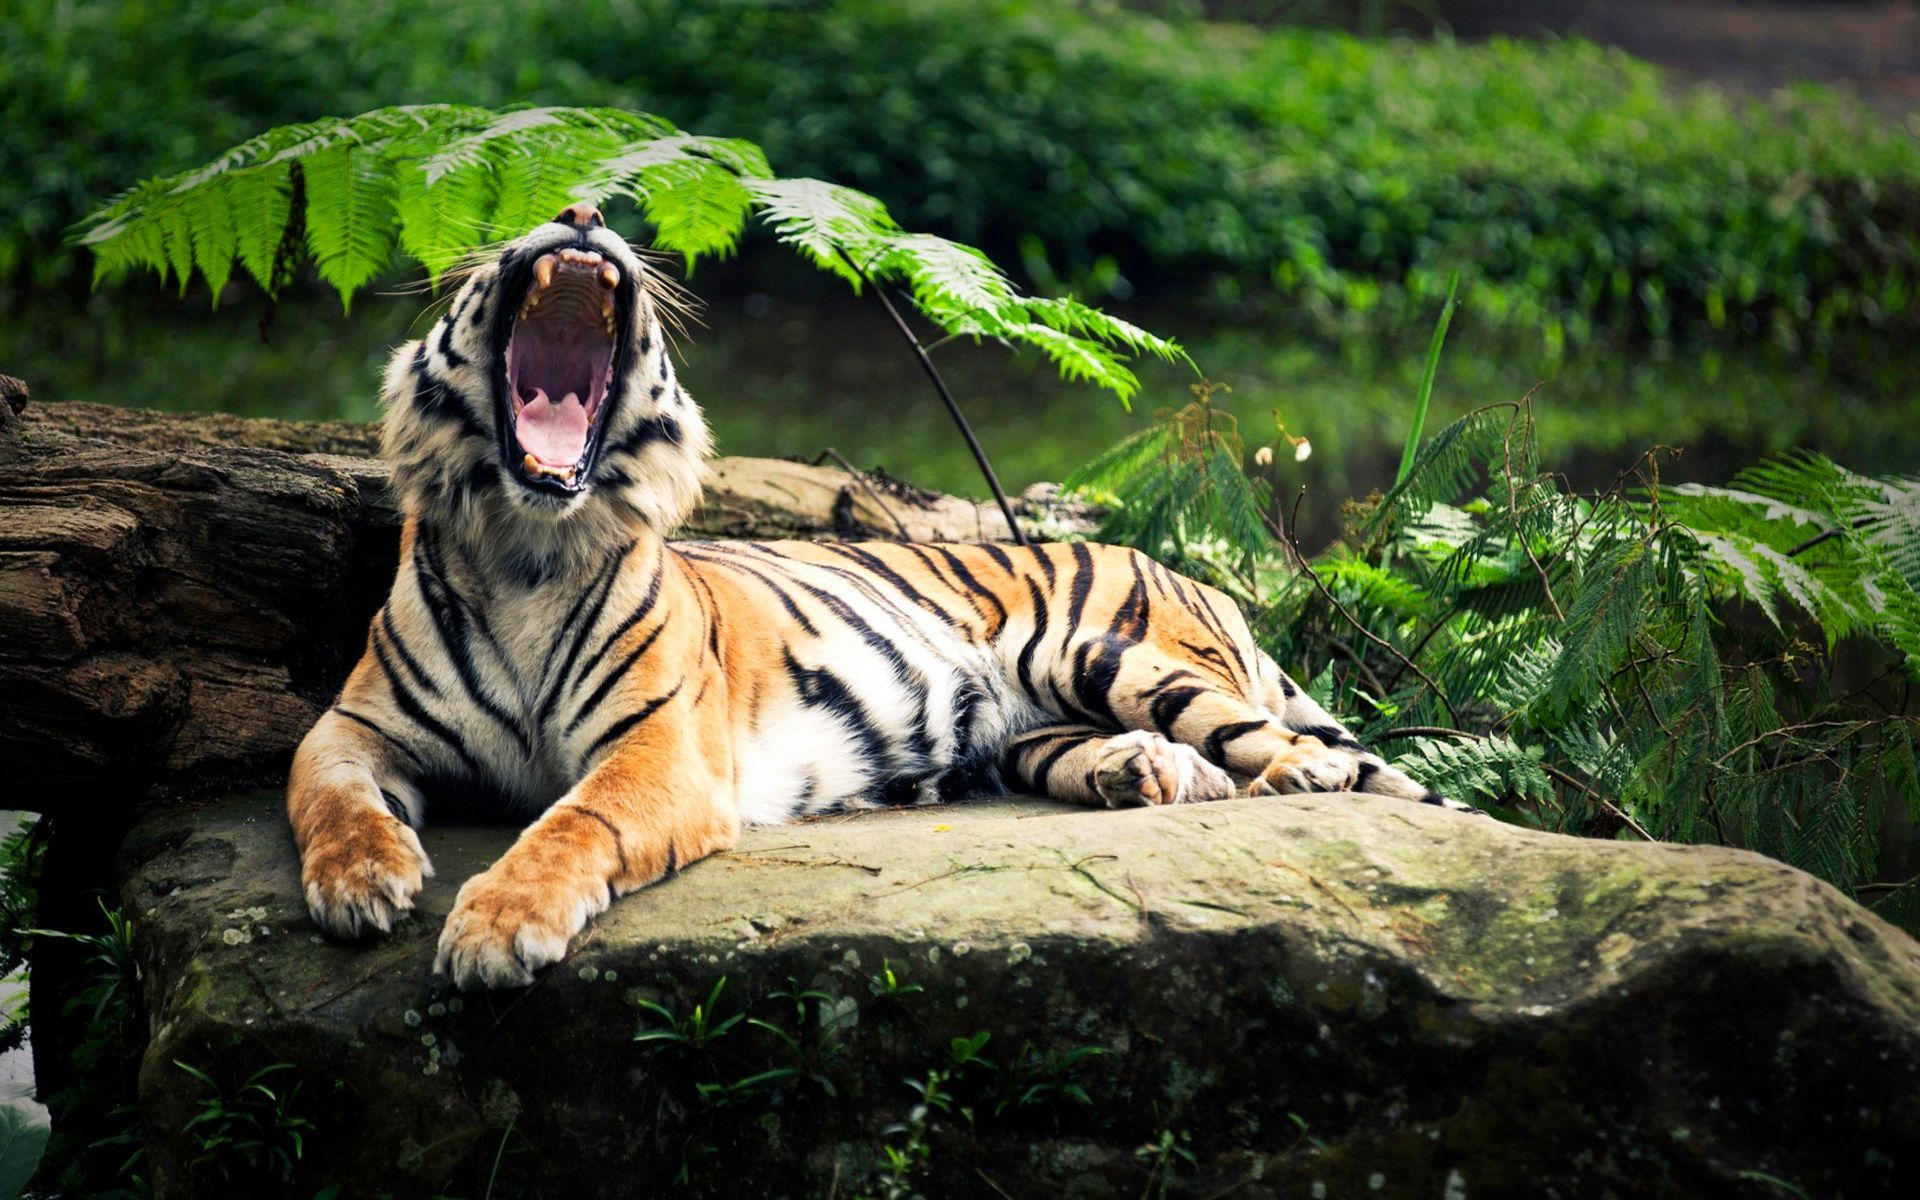 39741 download wallpaper Animals, Tigers screensavers and pictures for free